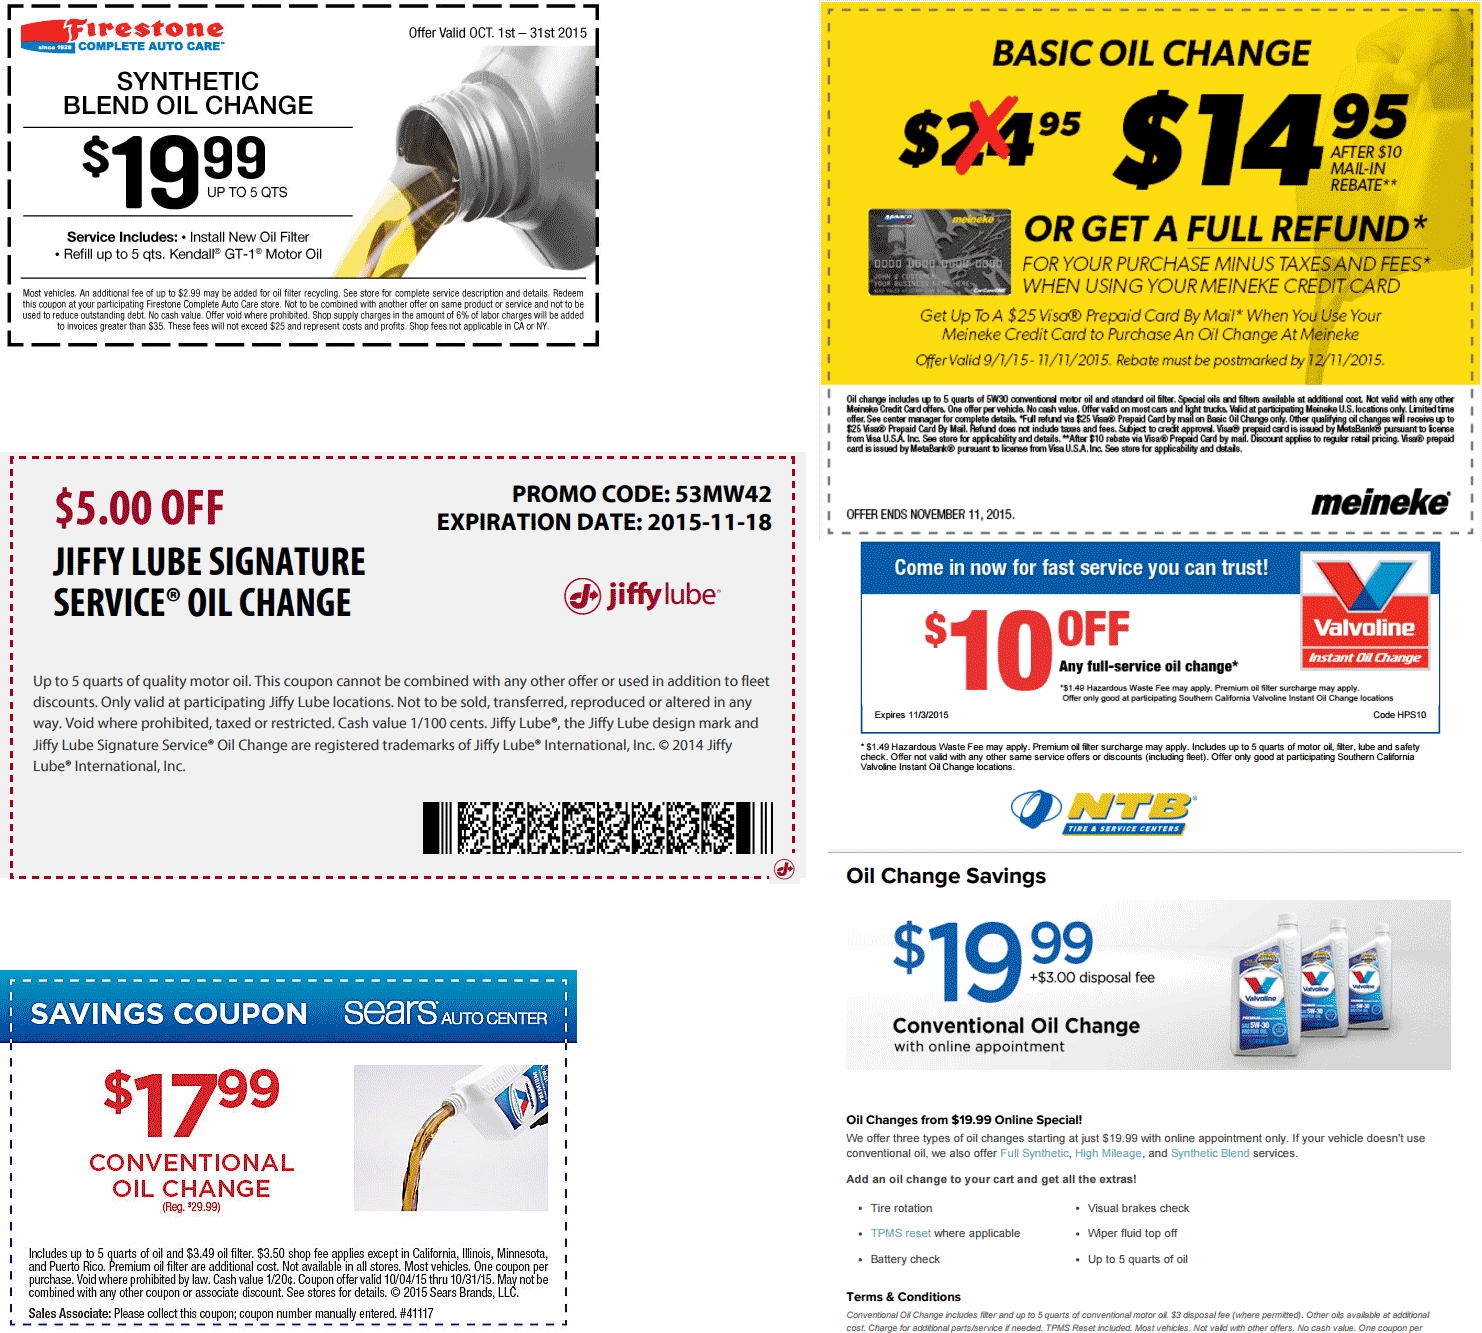 Discount oil change coupons walmart